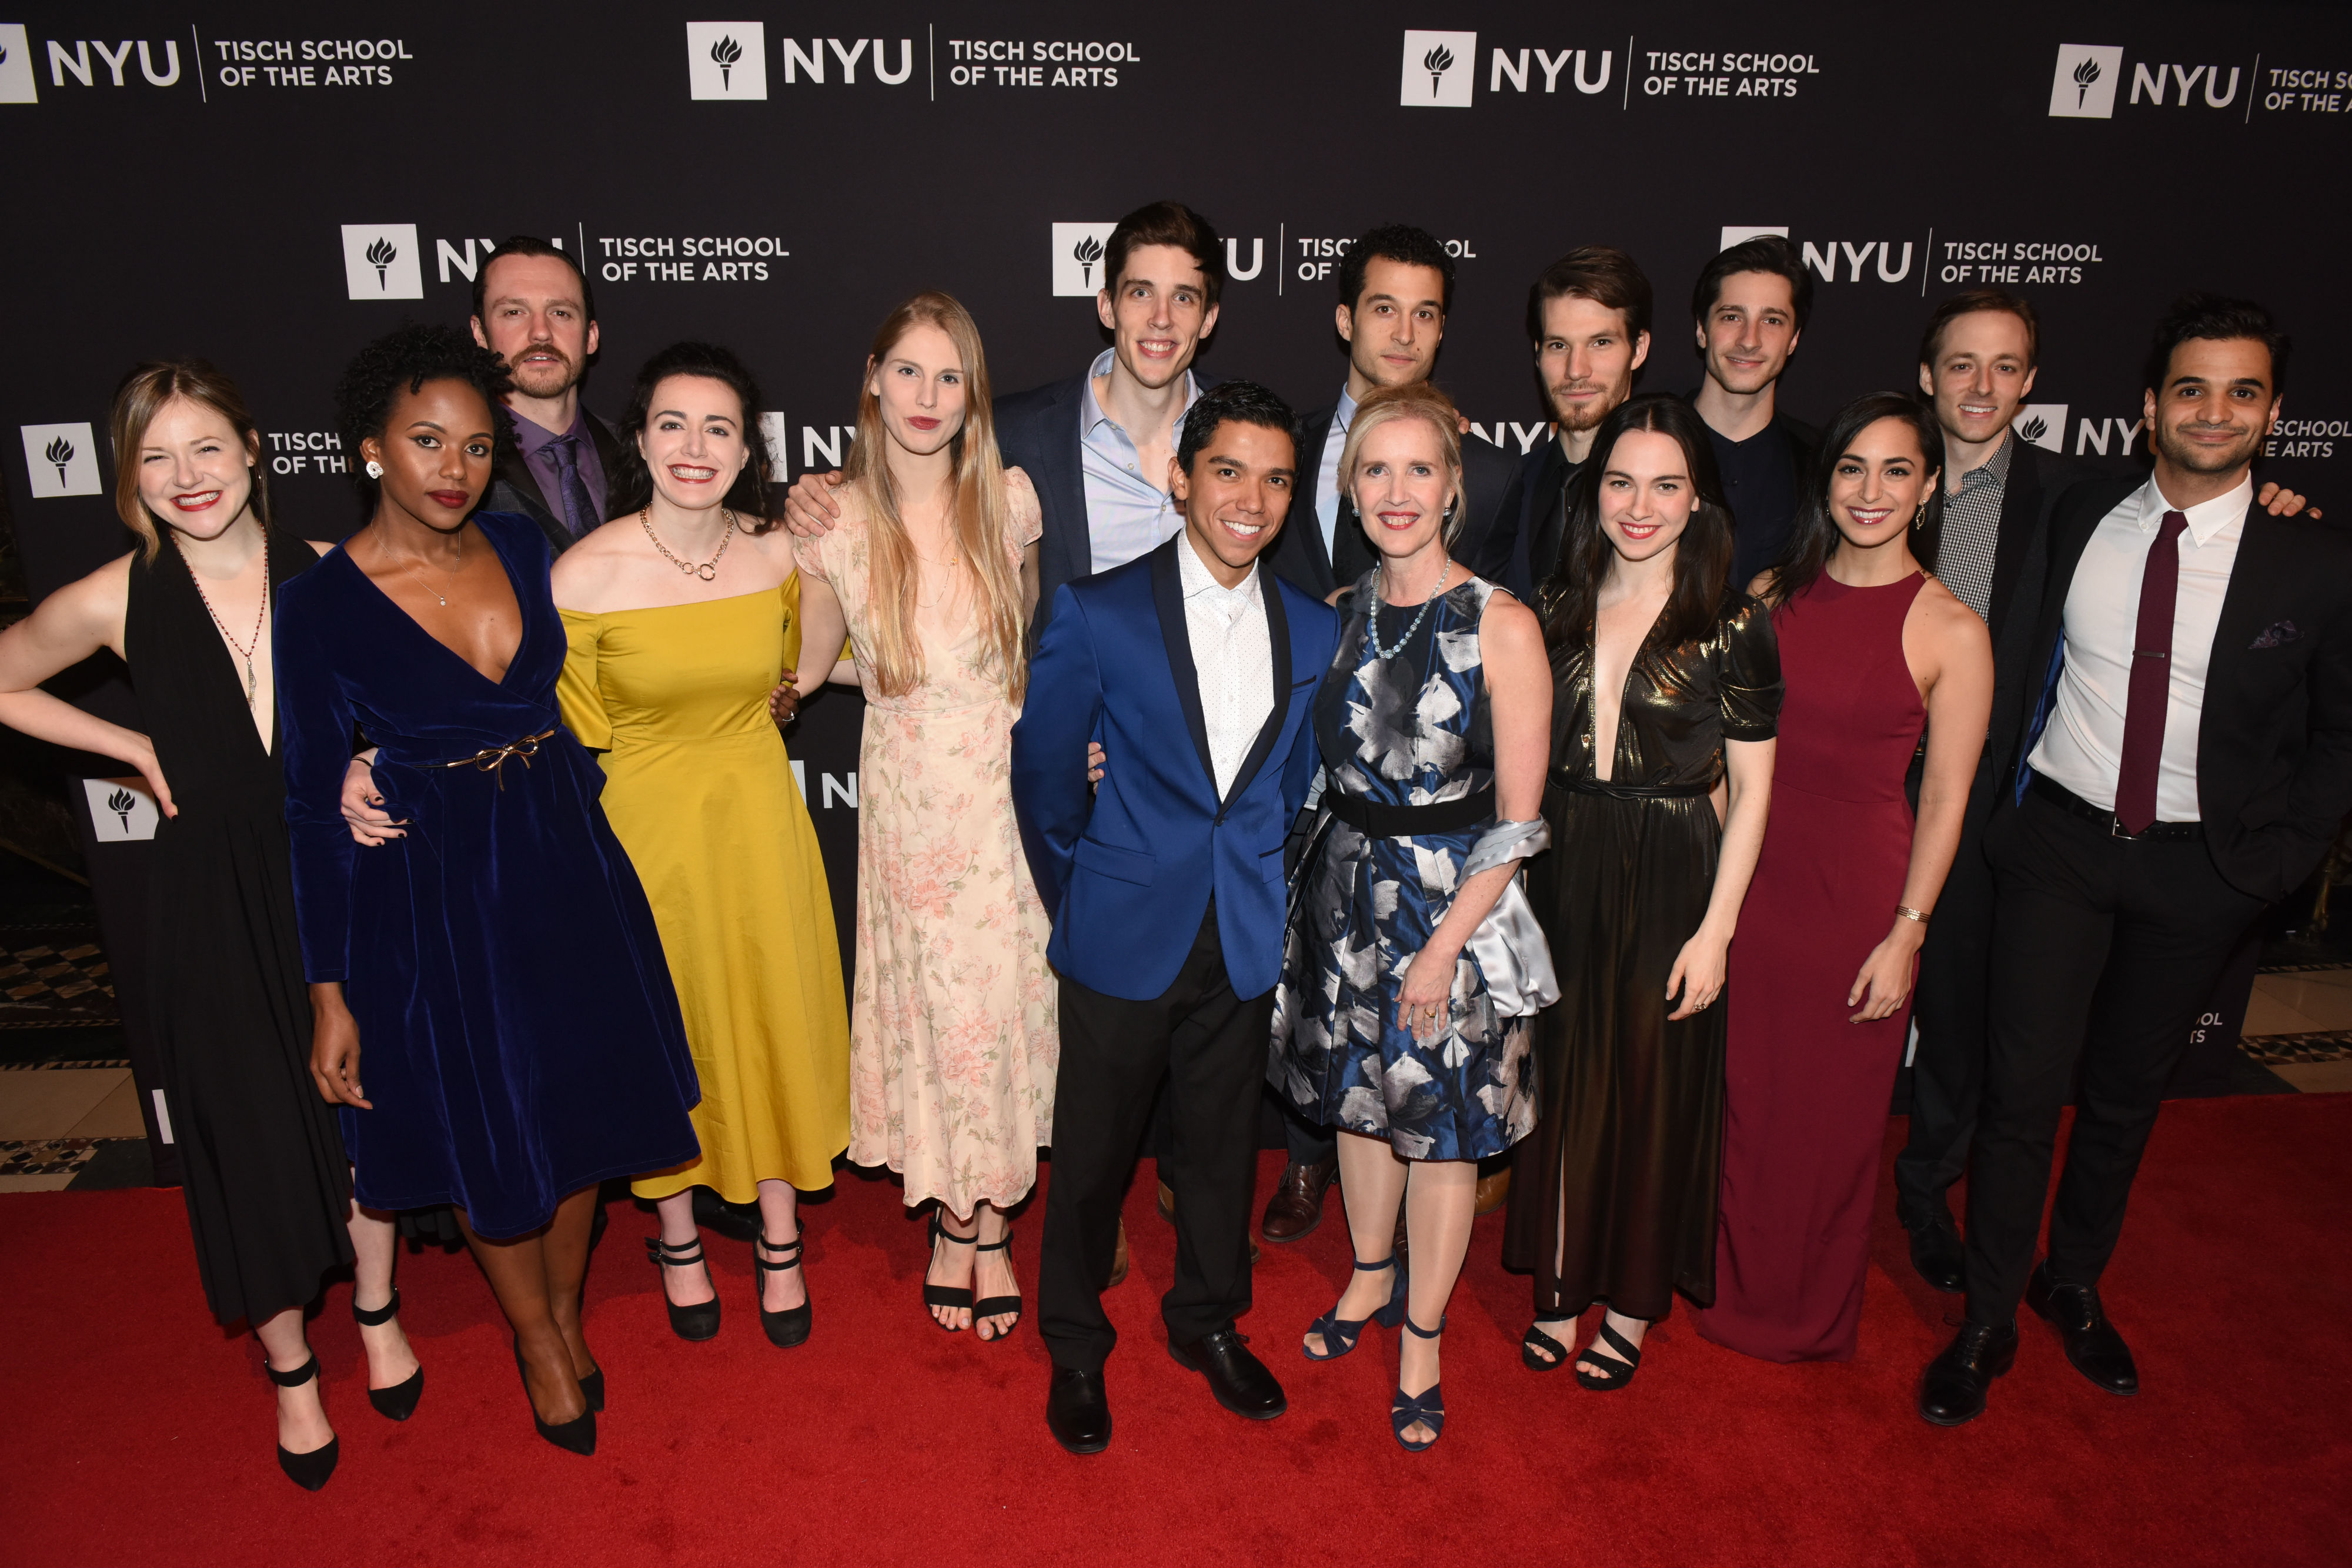 Nyu Tisch Alumni.Danai Gurira And André Holland Honored By Nyu Tisch School